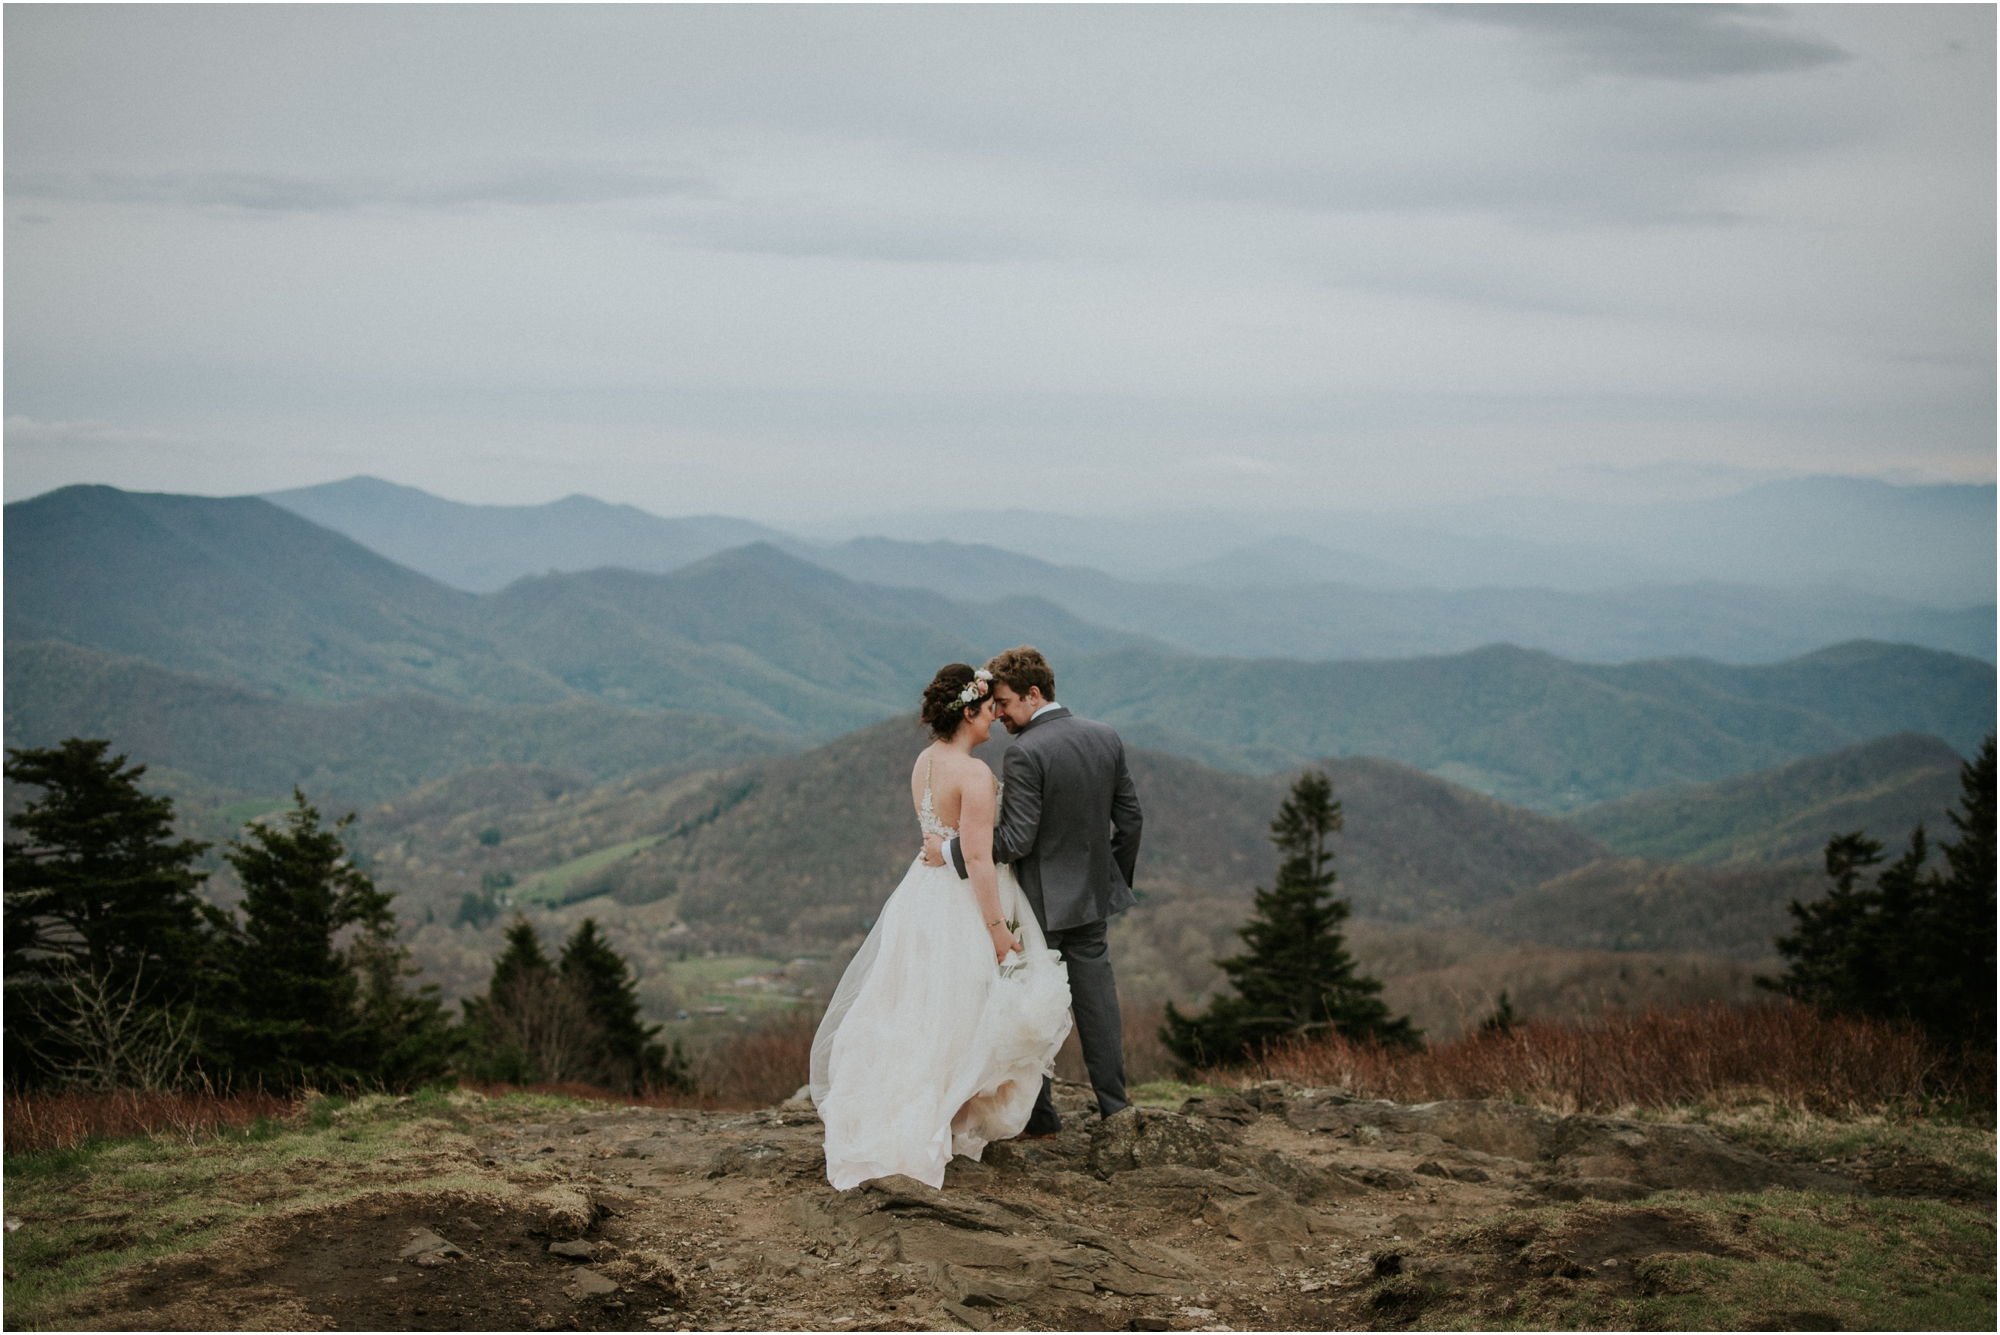 dusty-rose-mountaintop-rustic-intimate-wedding-elopement-johnson-city-roan-mountain-tn-tennessee-northeast-blue-ridge-mountains_0110.jpg